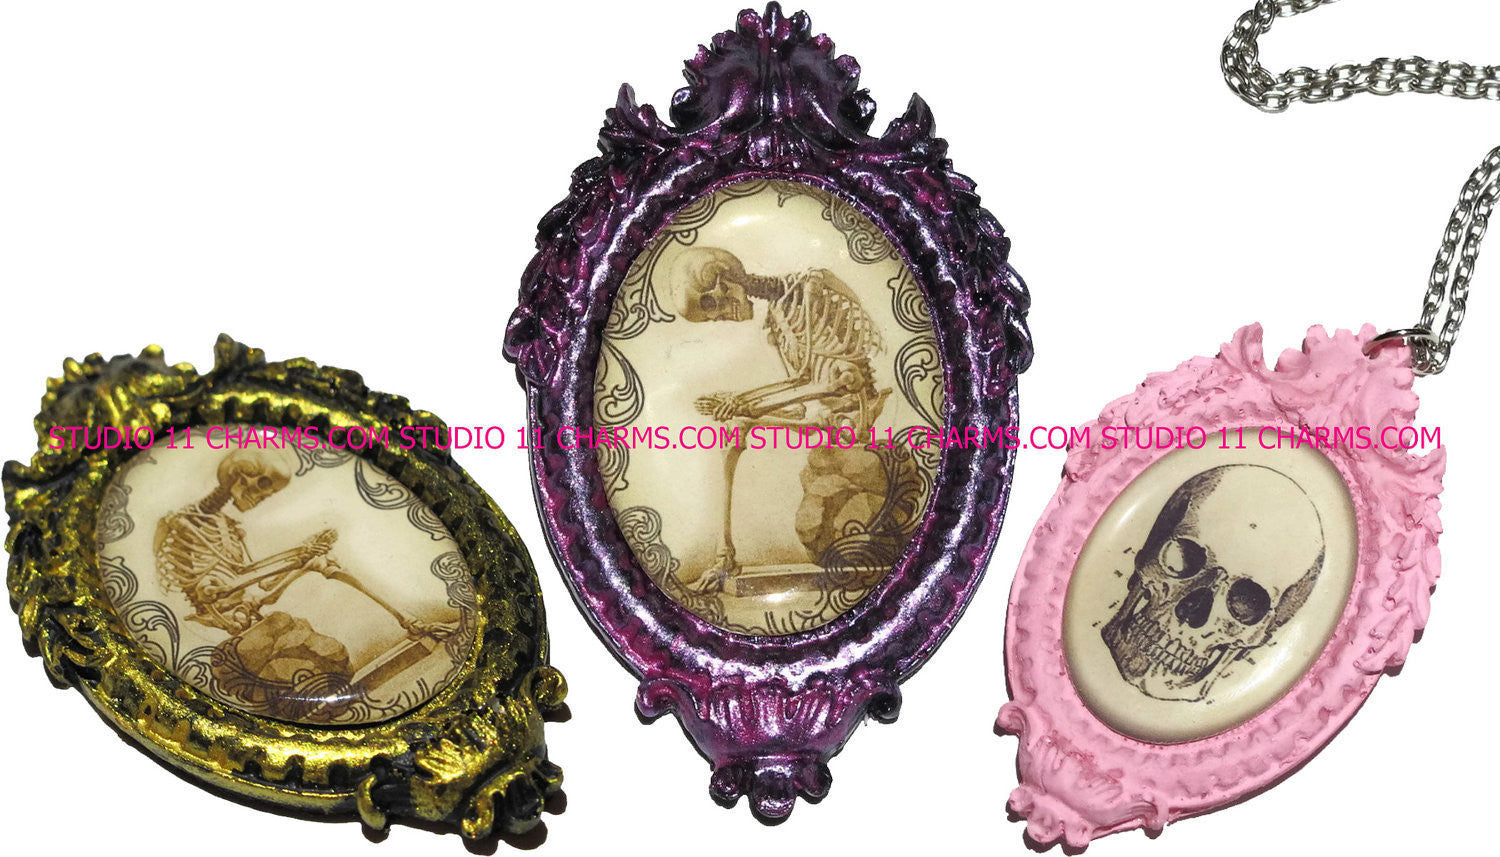 40x30, 18x25, 13X18 Resin Cameo LOW DOME Cabochon. Anatomy 3b Vintage Style